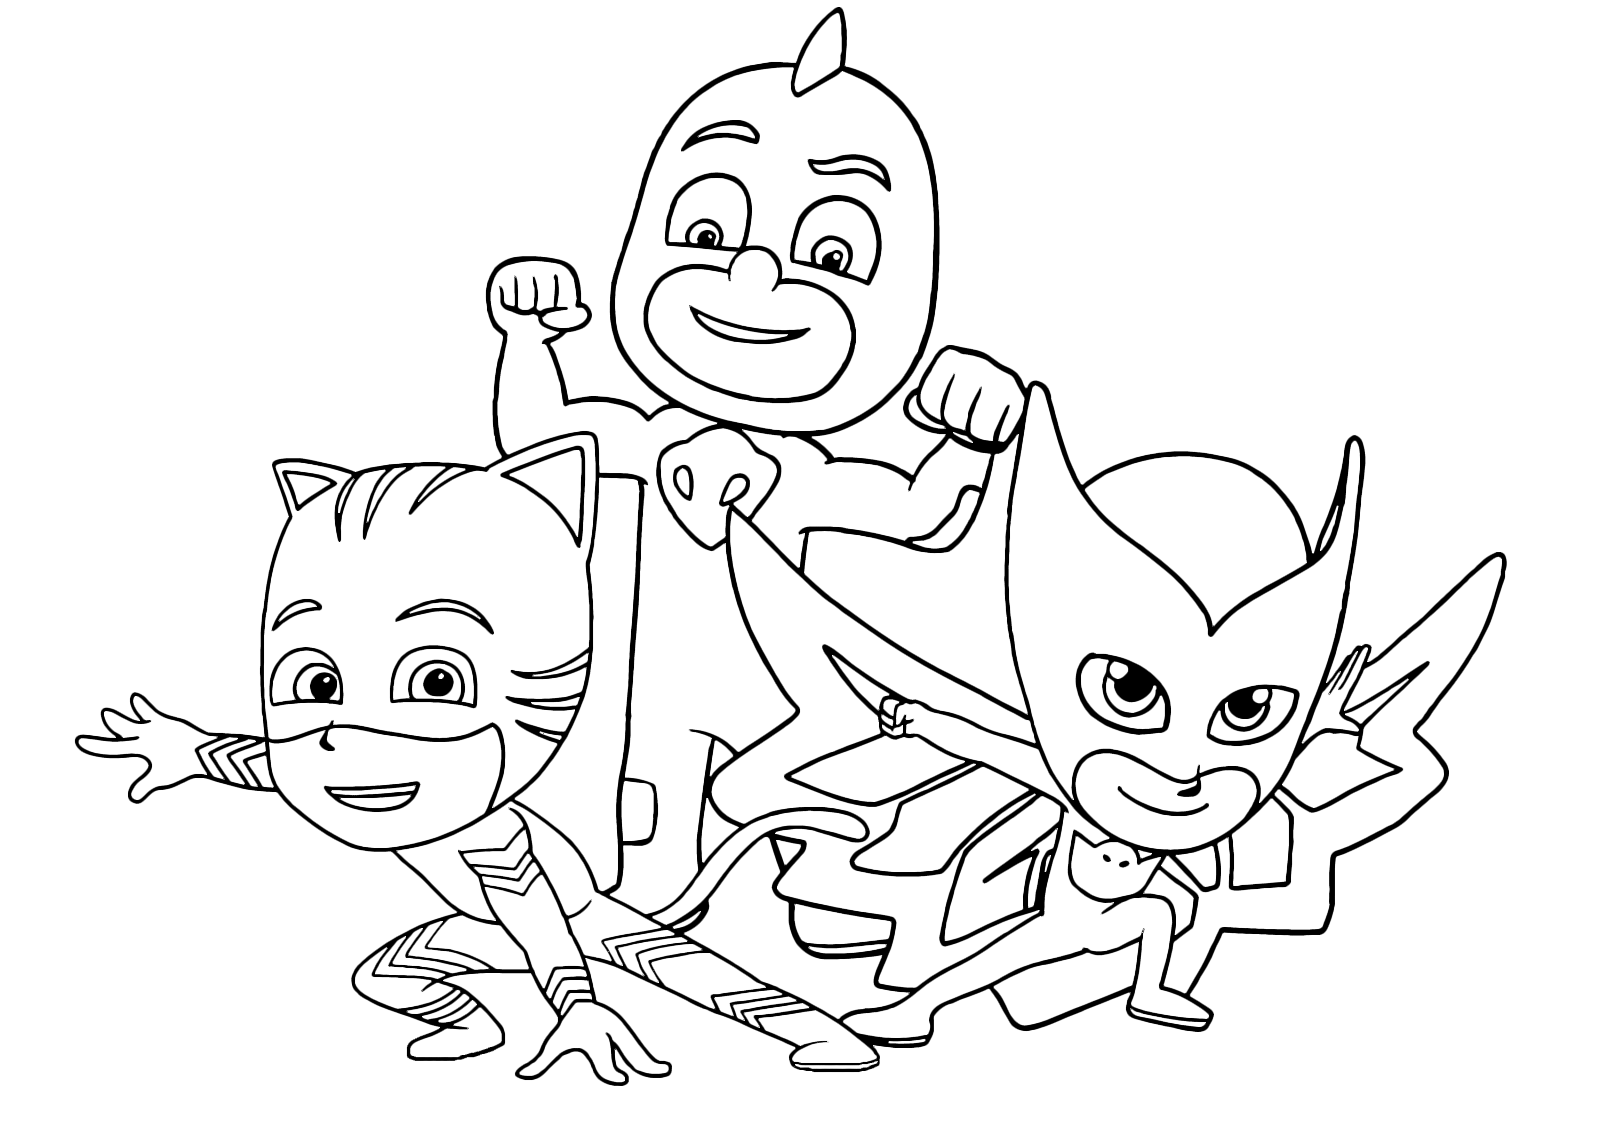 Pj masks coloring sheets - Pj Masks Team Ready To Defend The City